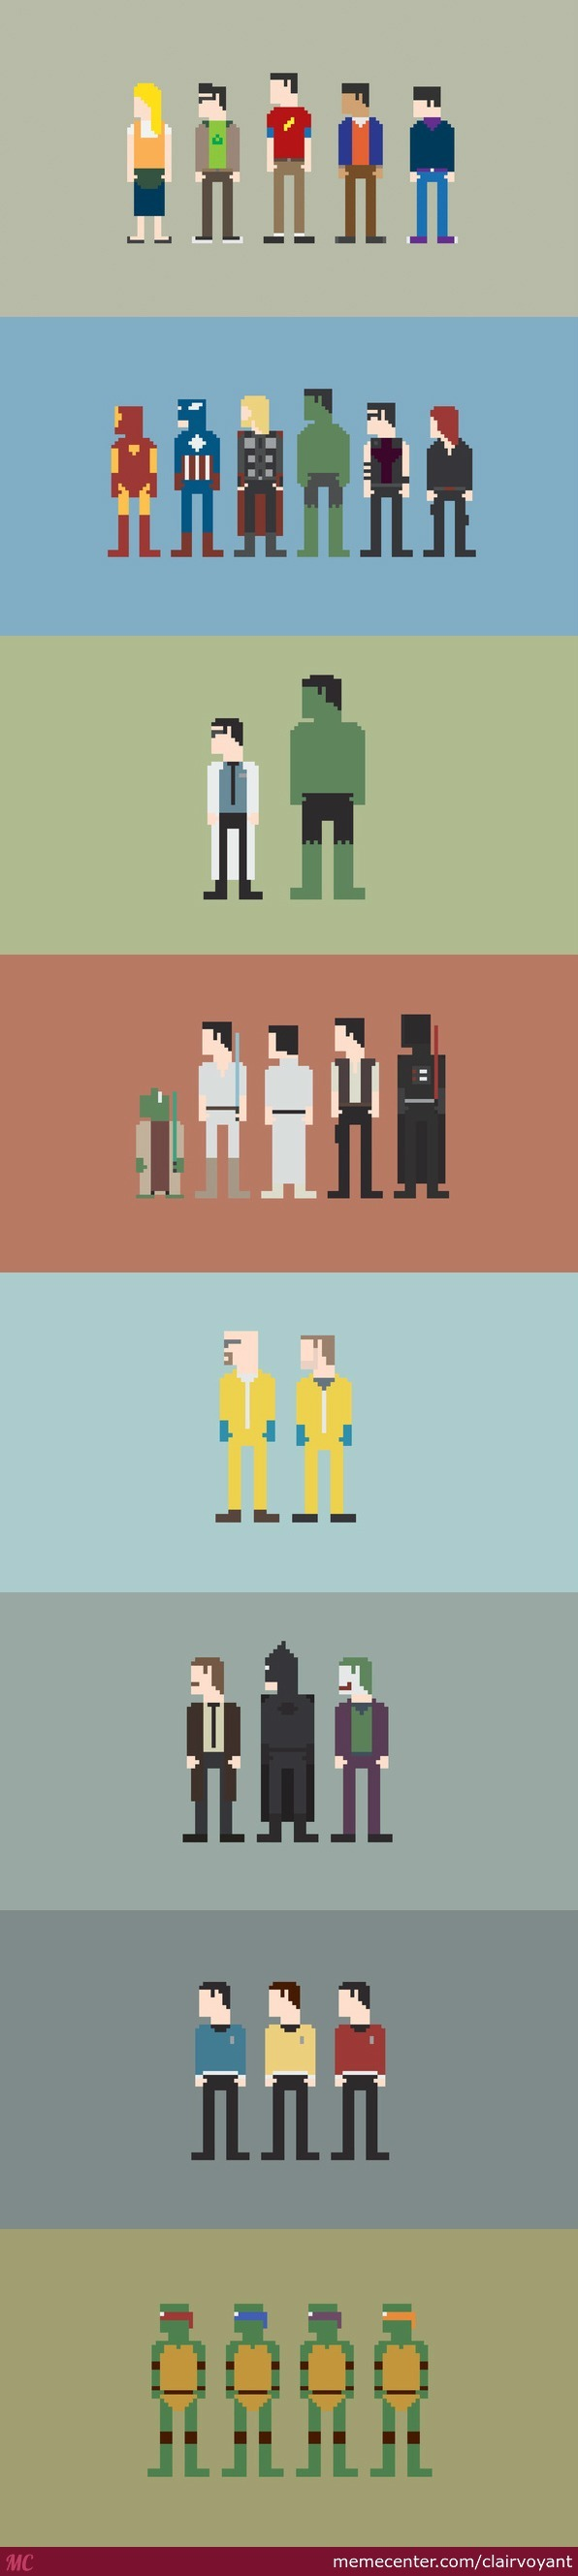 It's All About 8-Bit.